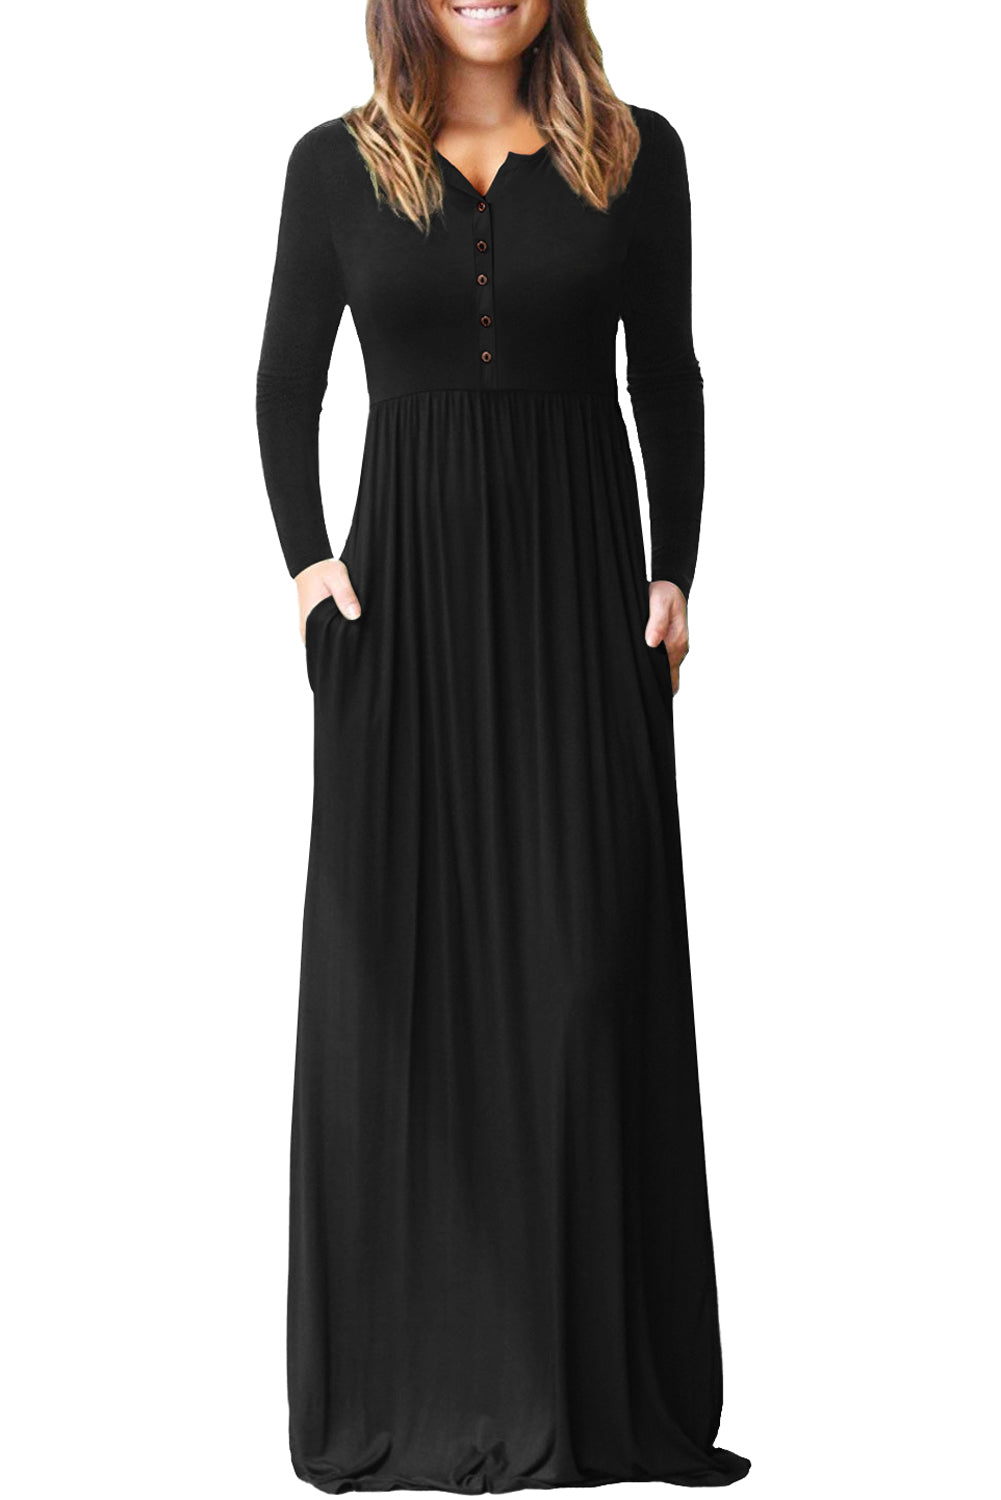 Black Long Sleeve Button Down Casual Maxi Dress Maxi Dresses Discount Designer Fashion Clothes Shoes Bags Women Men Kids Children Black Owned Business